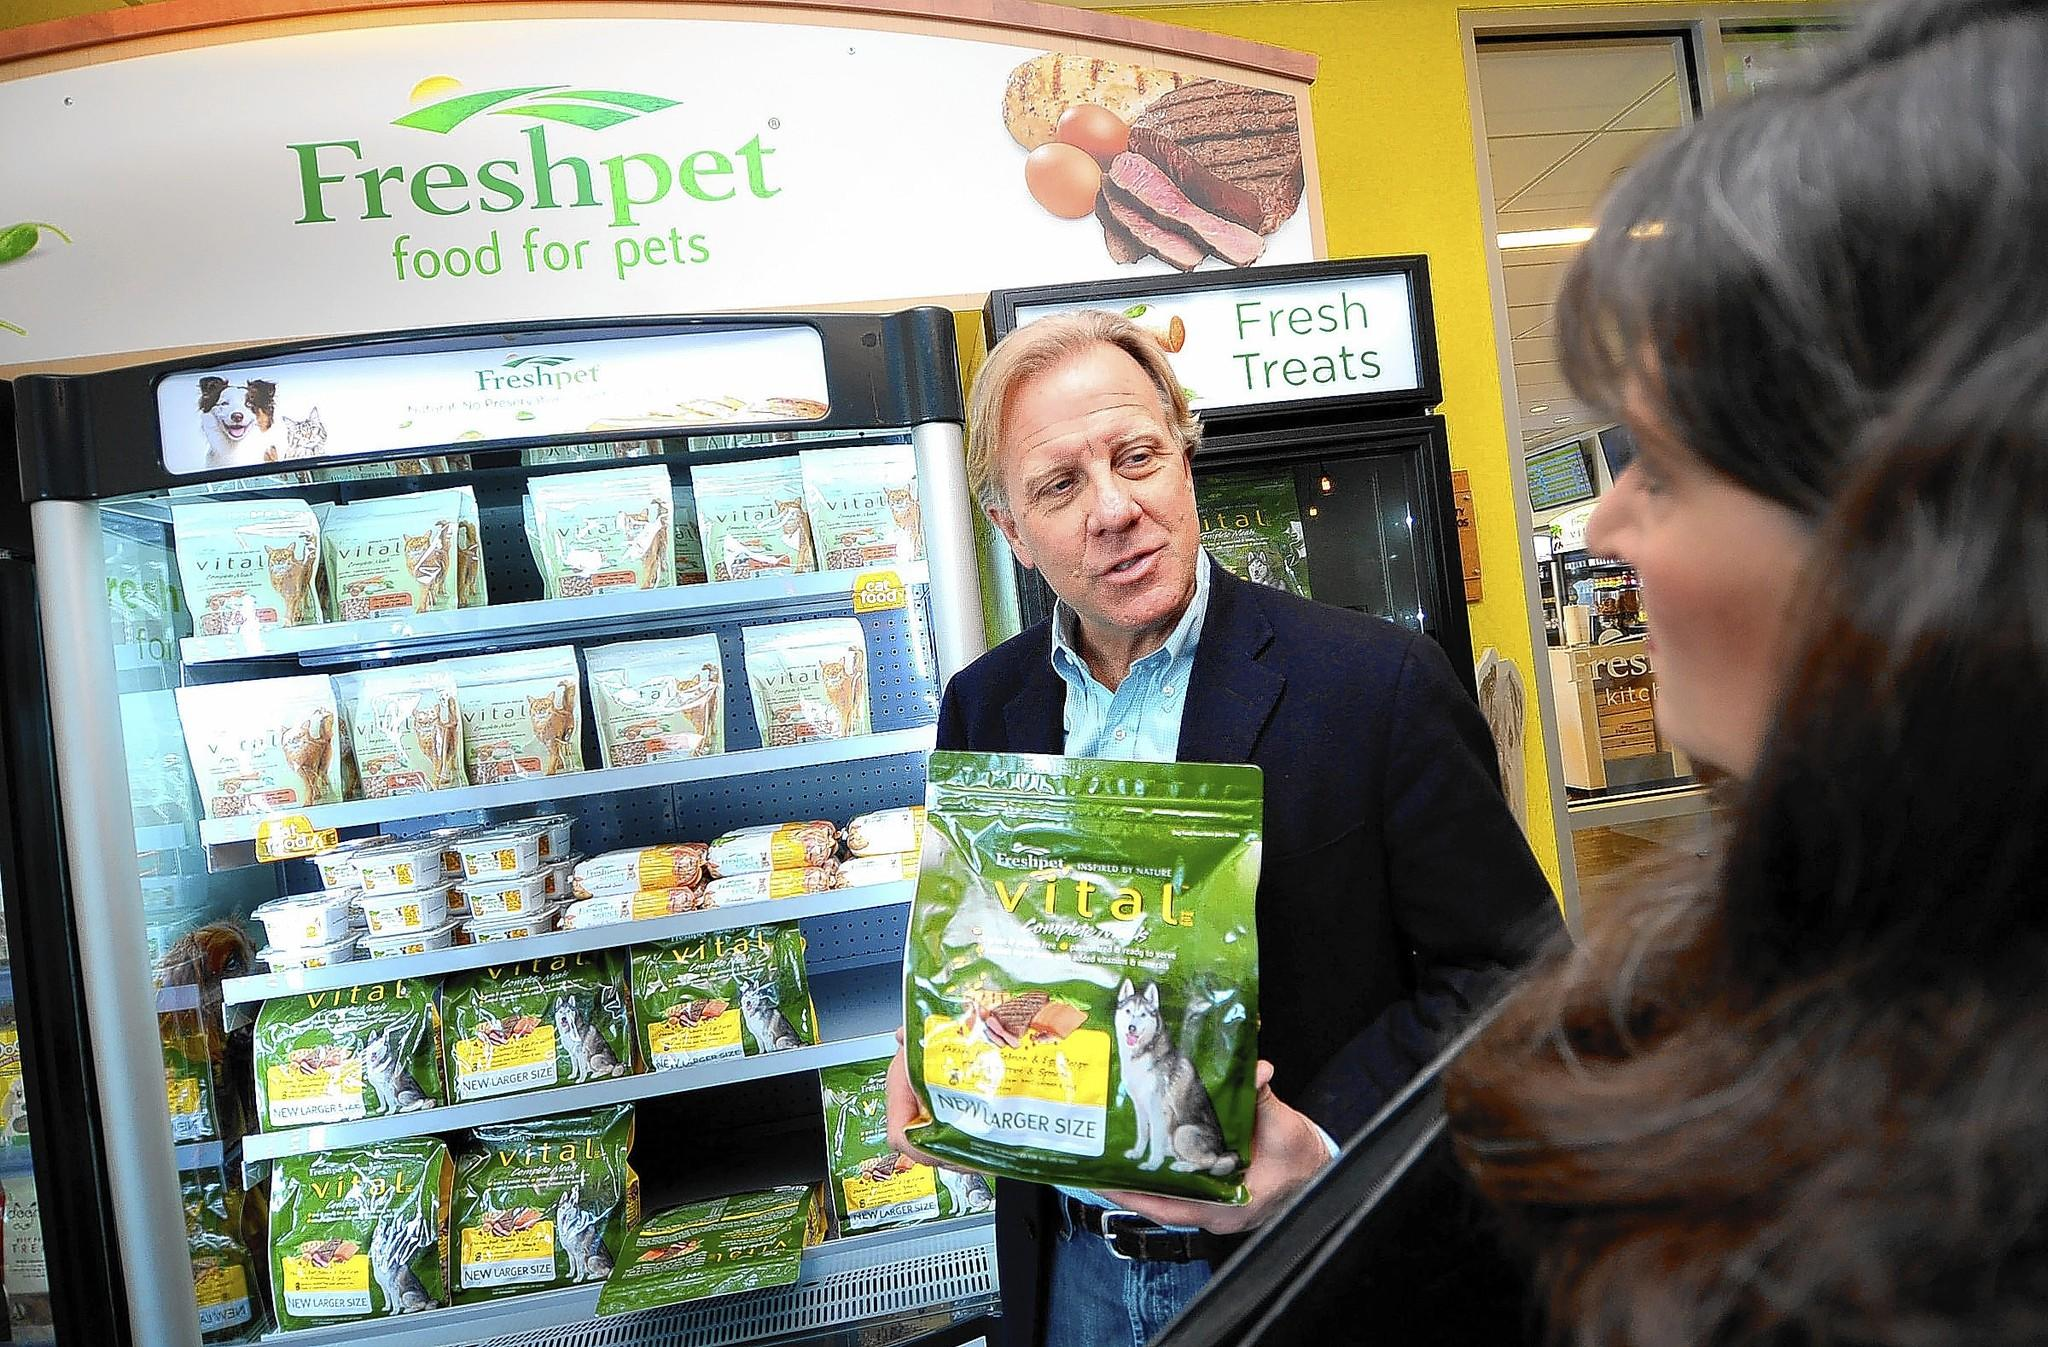 Freshpet CEO Richard Thompson talks with plant visitor Cindy Zimmerman of Clark's Summit. Behind him is one of Freshpet's standard display case/refrigerators often seen in stores where the product is sold. The Freshpet natural pet food company is expanding its $25 million facility.